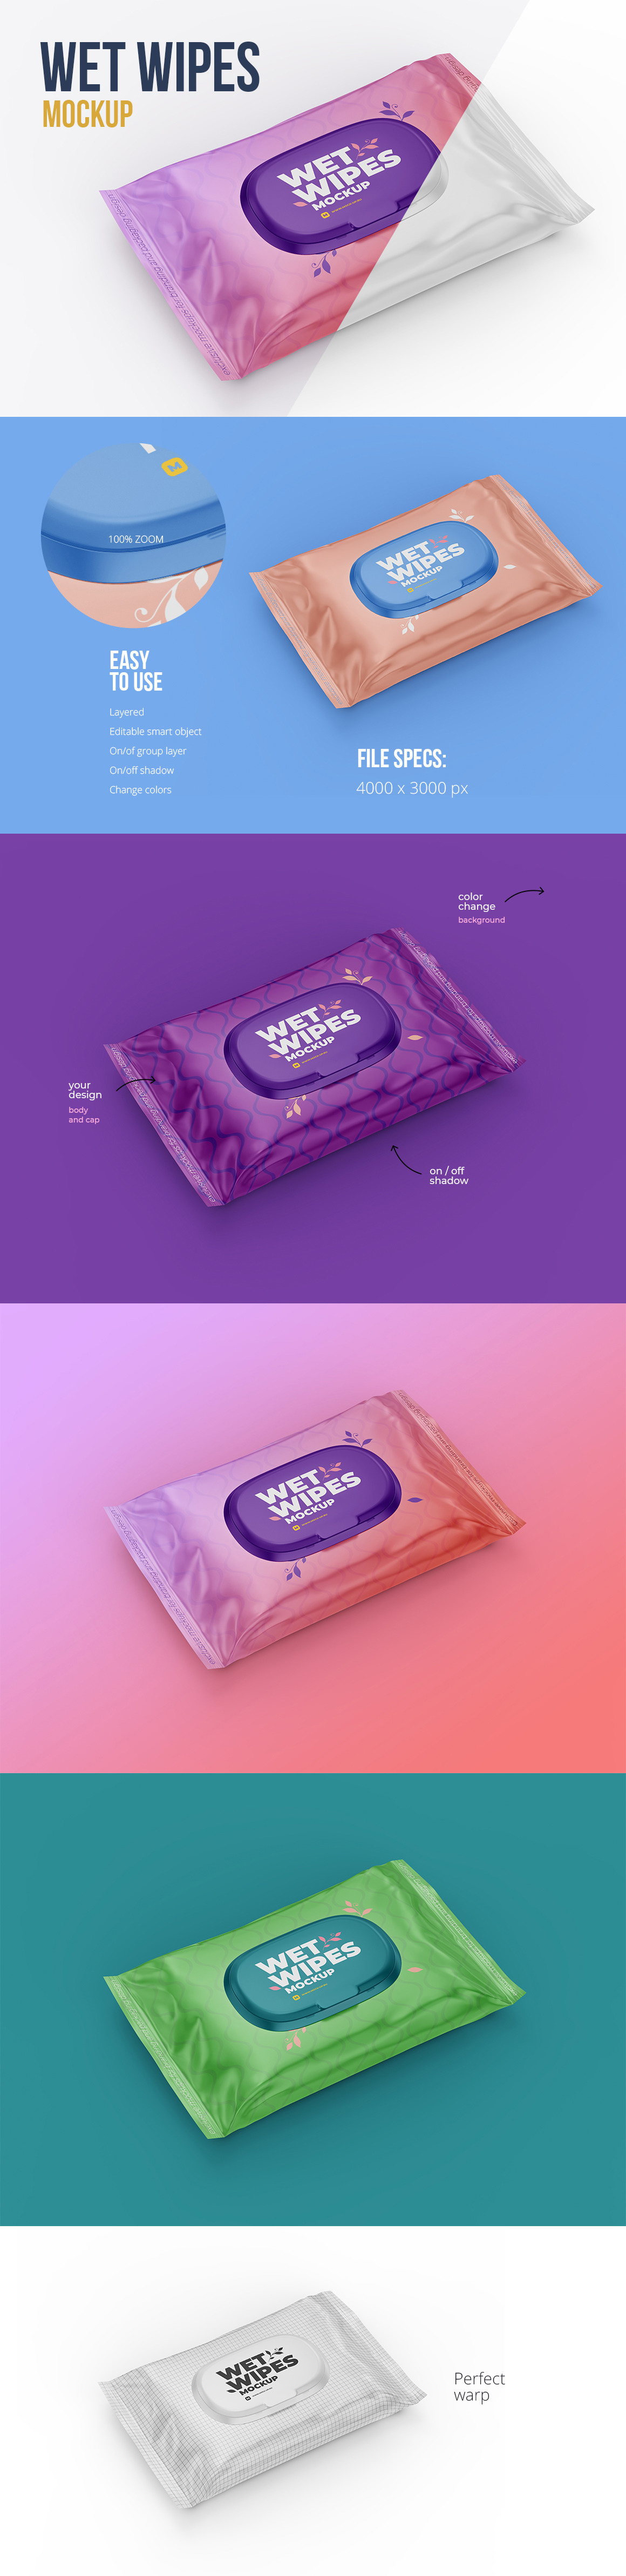 Wet Wipes with Cap Mockup - Angled view